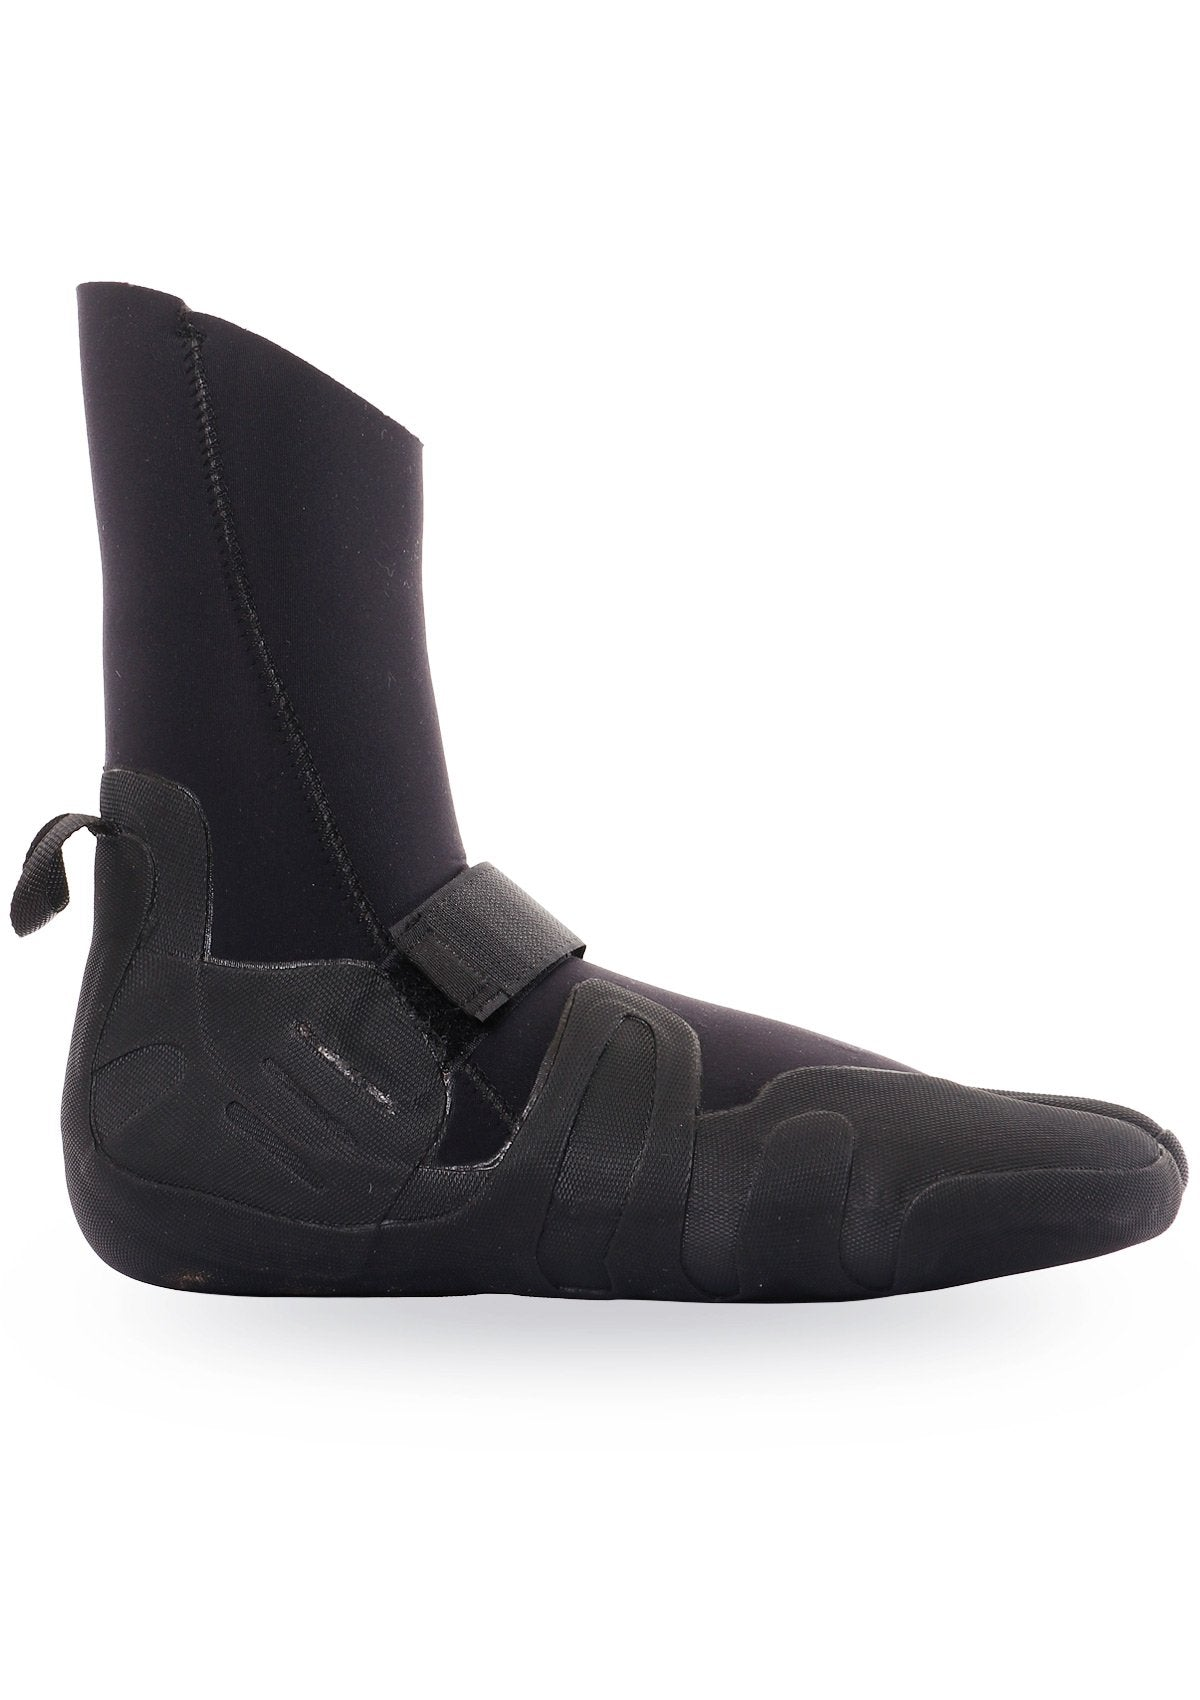 needessentials 6mm thermal booties winter surfing black non branded